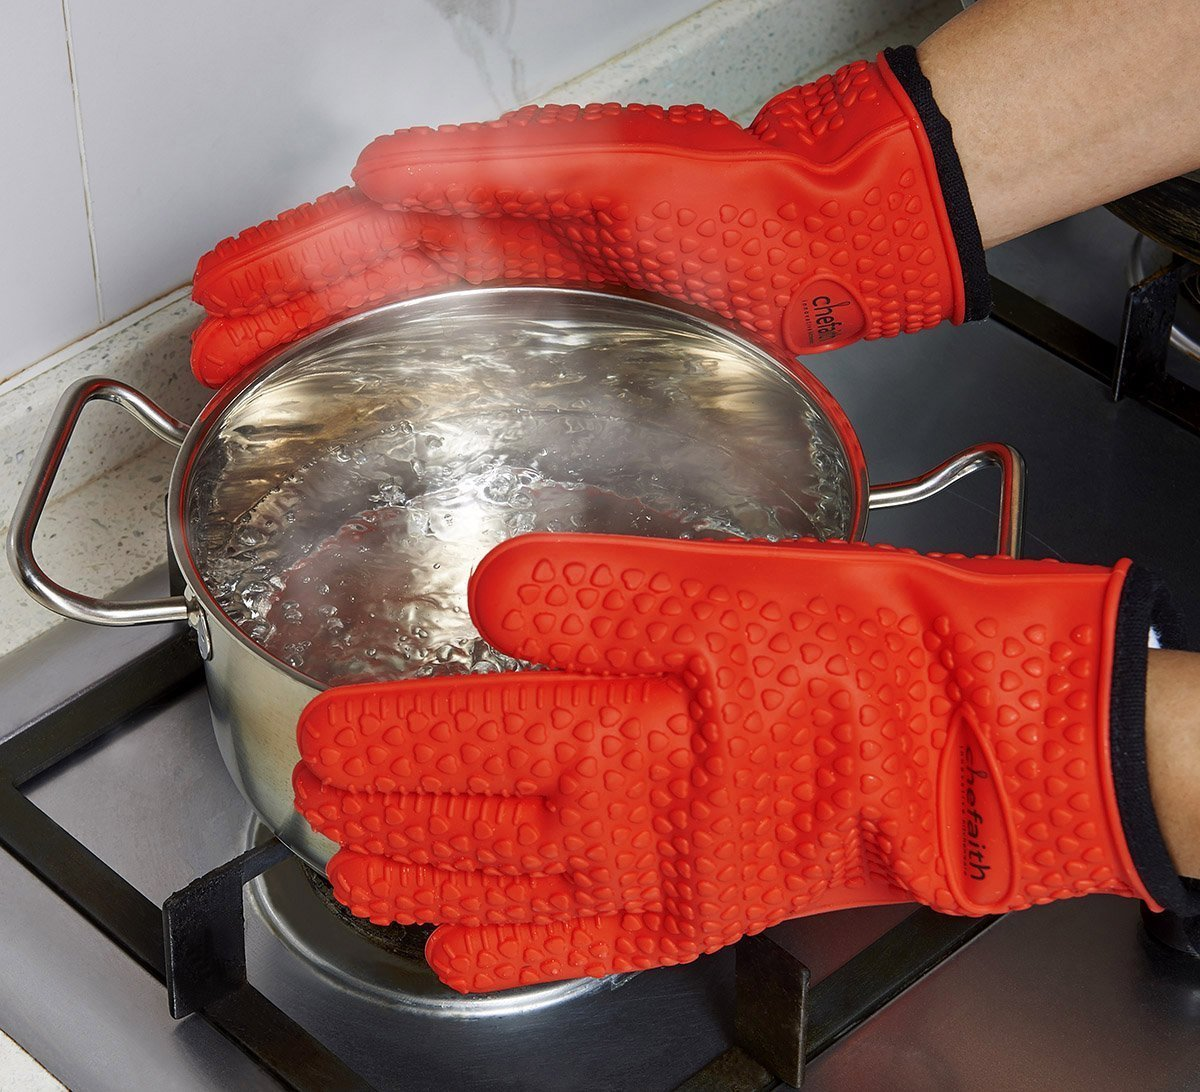 Chefaith Silicone Kitchen Gloves [Barbecue Shredding Smoker Meat Gloves] for Cooking, Baking, BBQ, Grilling [Free Pot Holder as Bonus]- Heat Resistant (Up to 480°F) Oven Mitts, Best Protection Ever by Chefaith (Image #3)